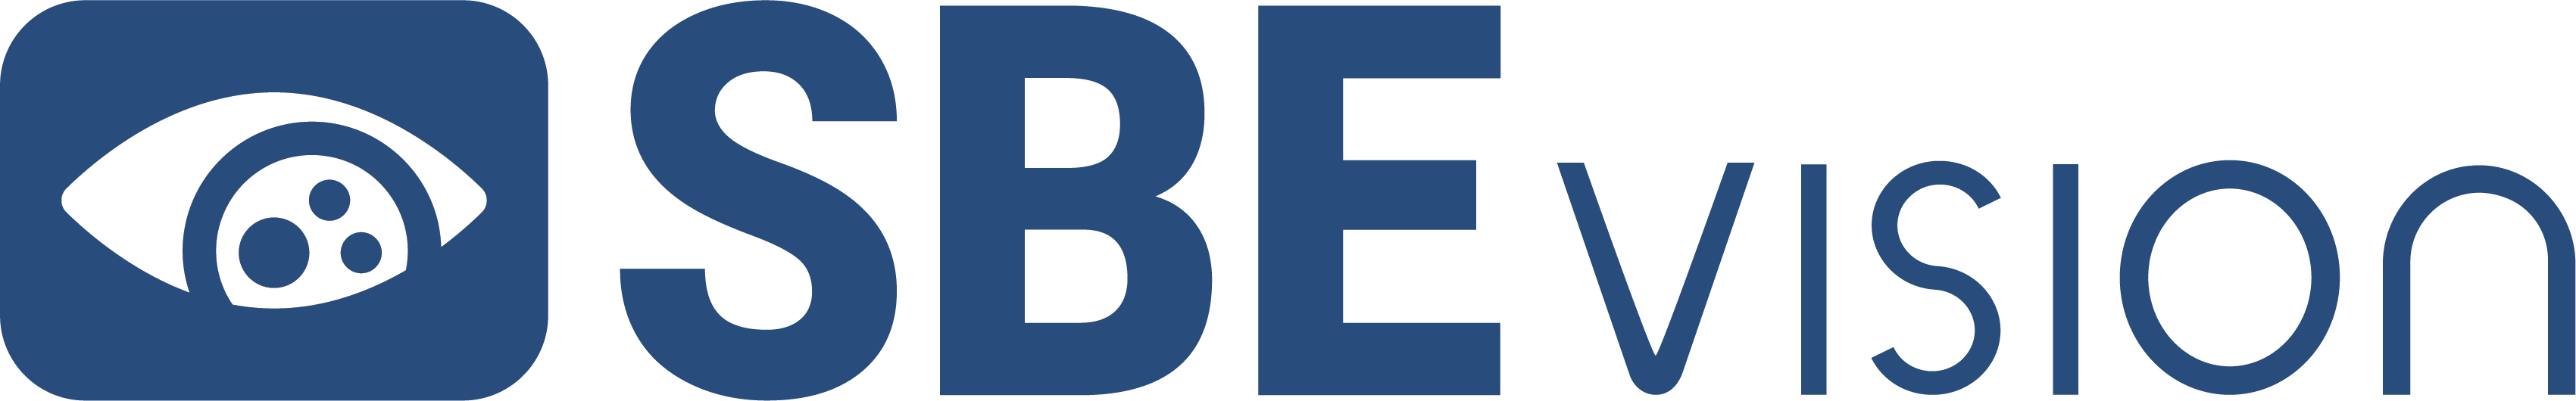 The SBE Vision logo: An eye icon made up of an eye next to the word mark.